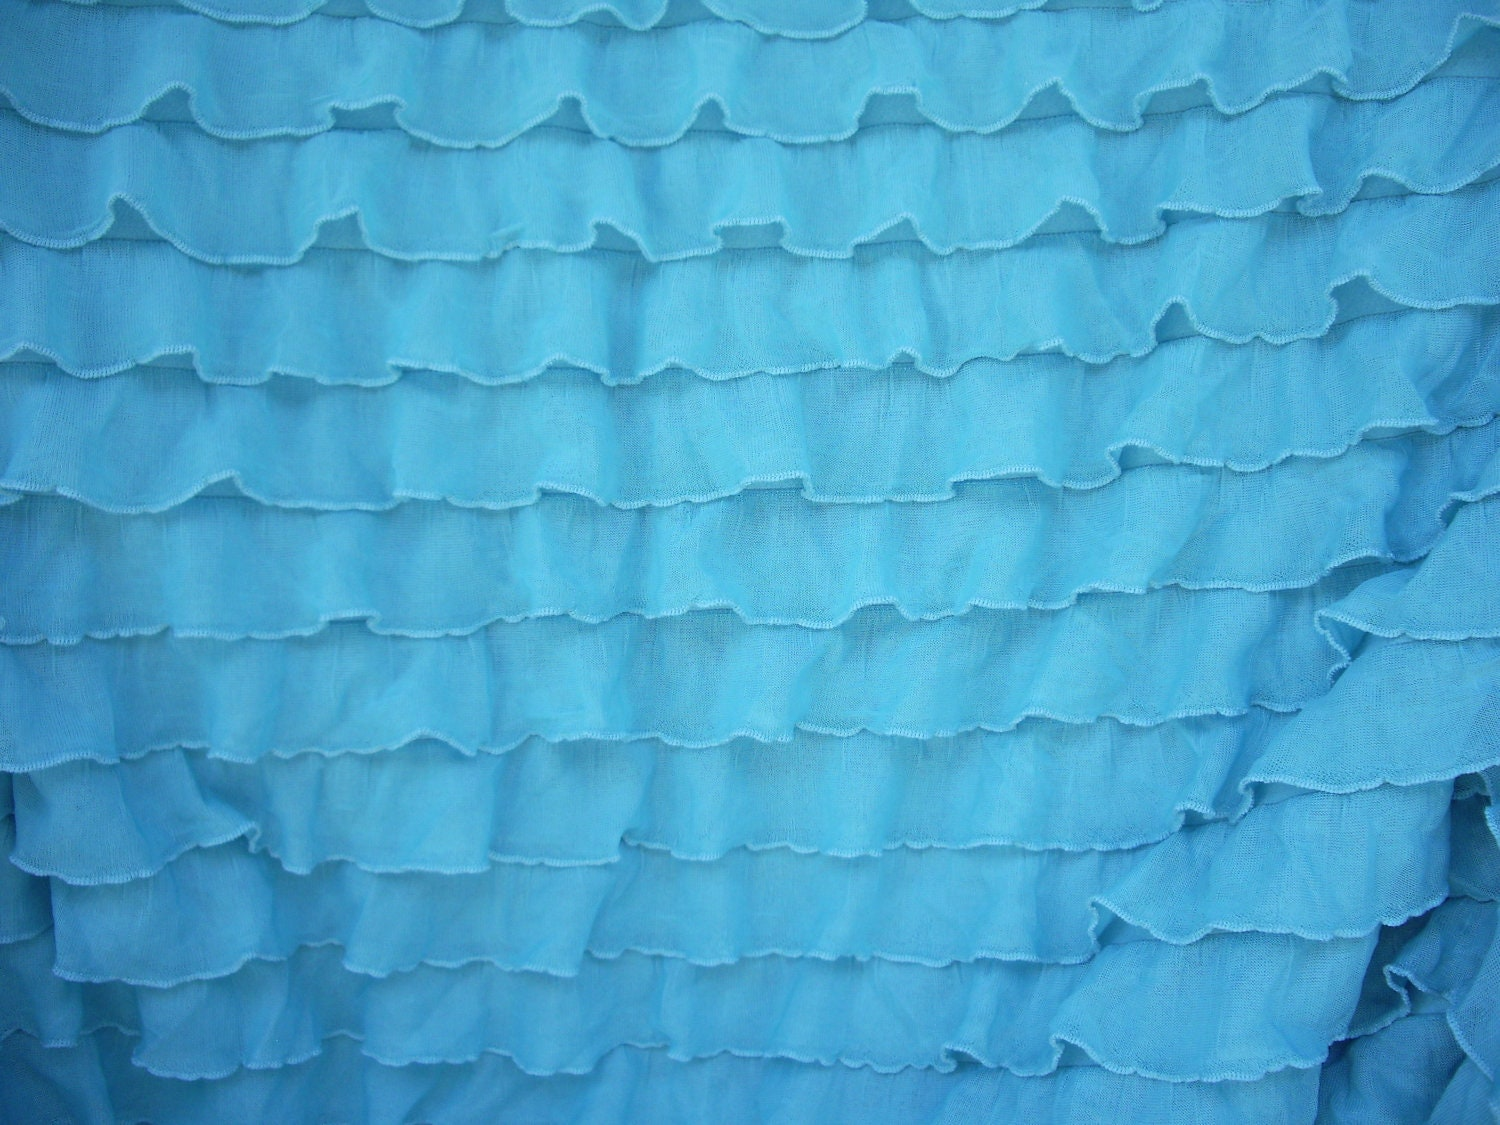 Aqua Ruffle Fabric 1 Yard